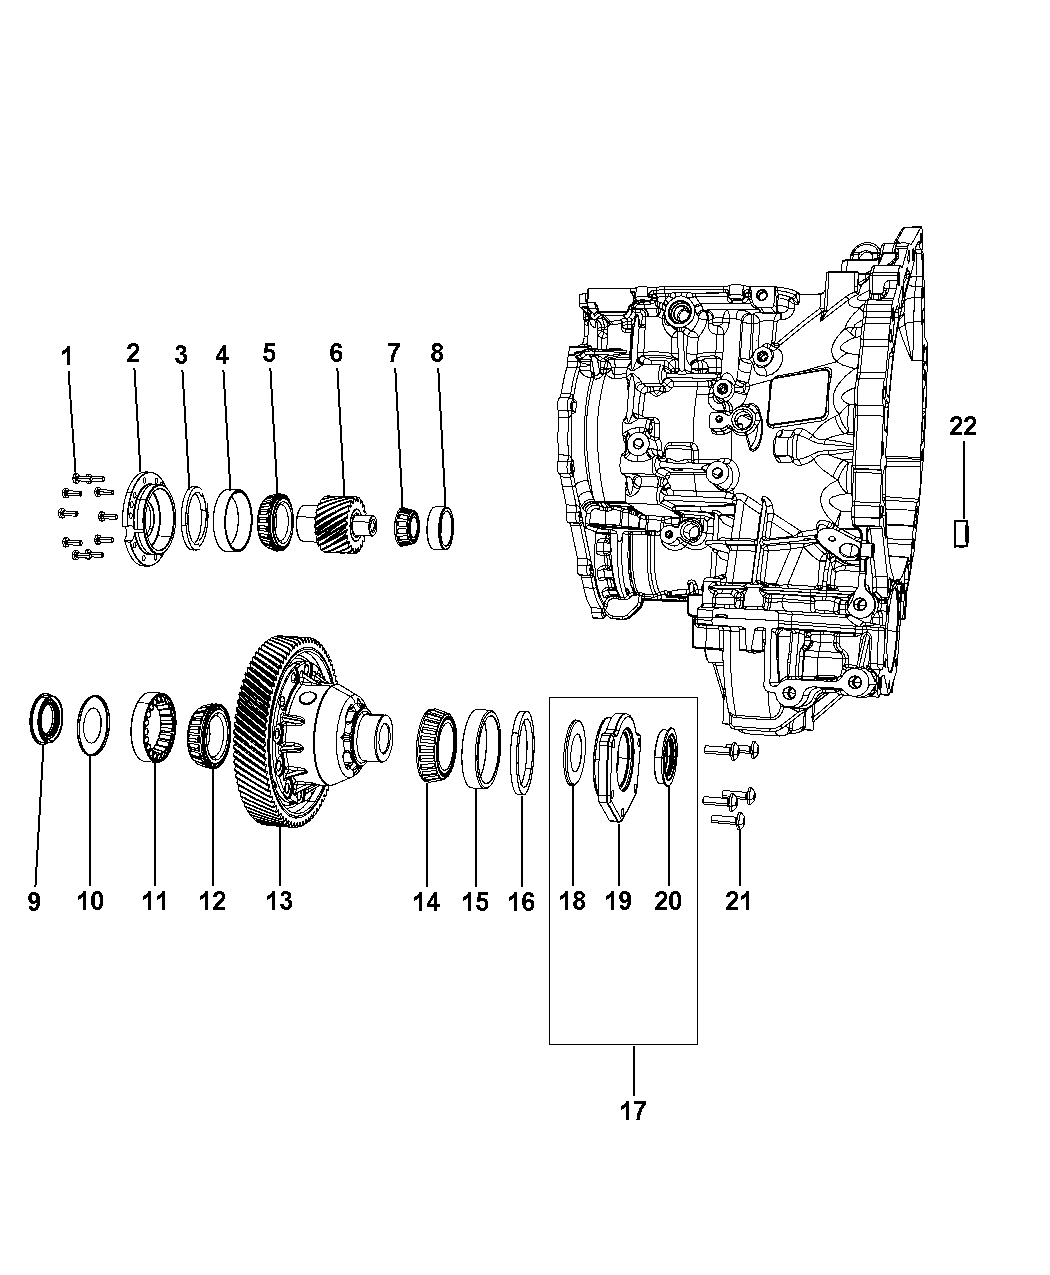 2009 Dodge Journey Transmission Diagram